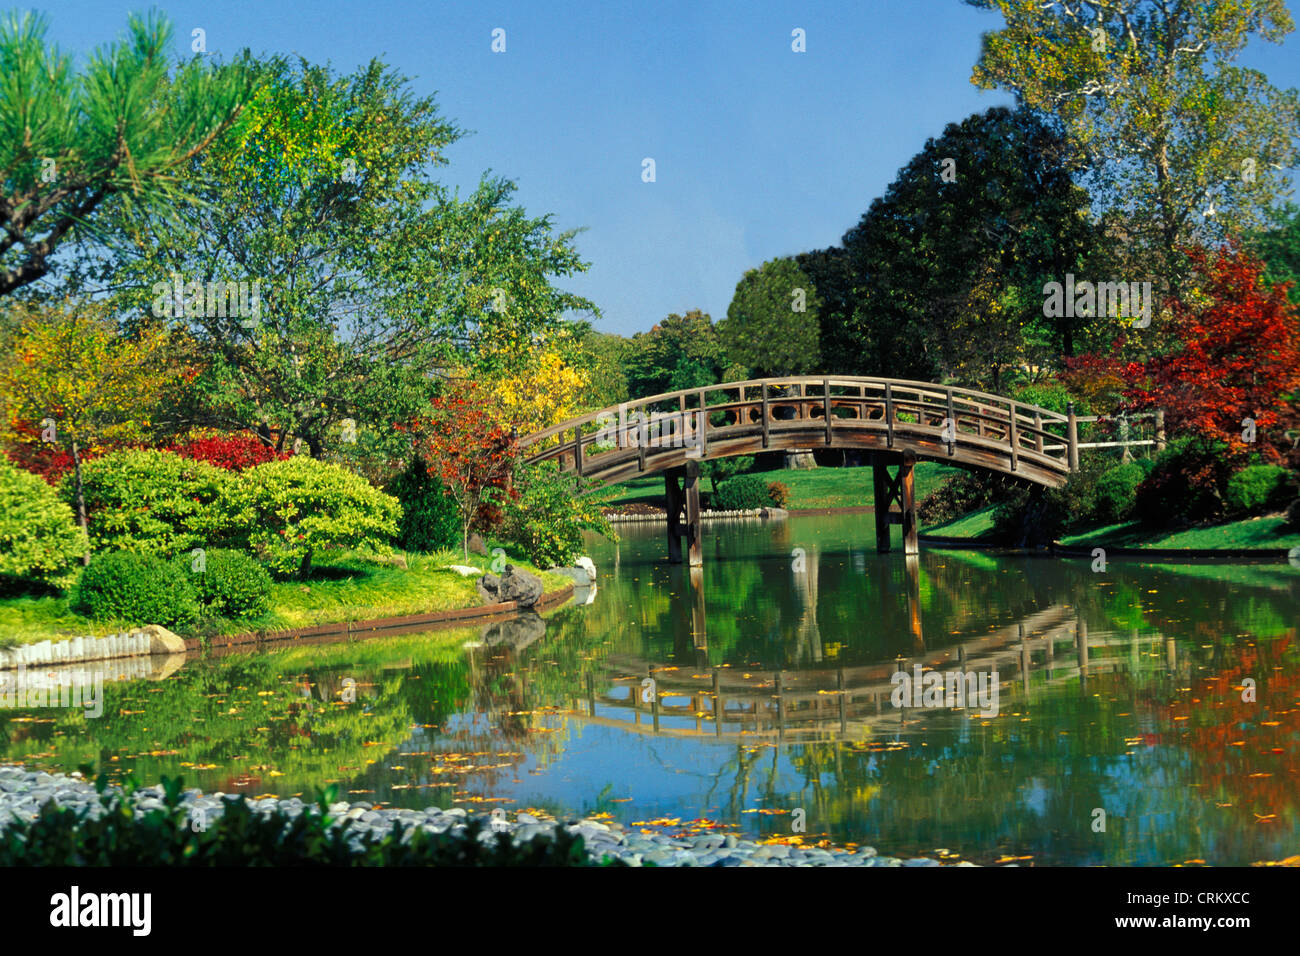 Delicieux Wooden Curved Bridge Over Pond In The Missouri Botanical Garden, St. Louis  USA